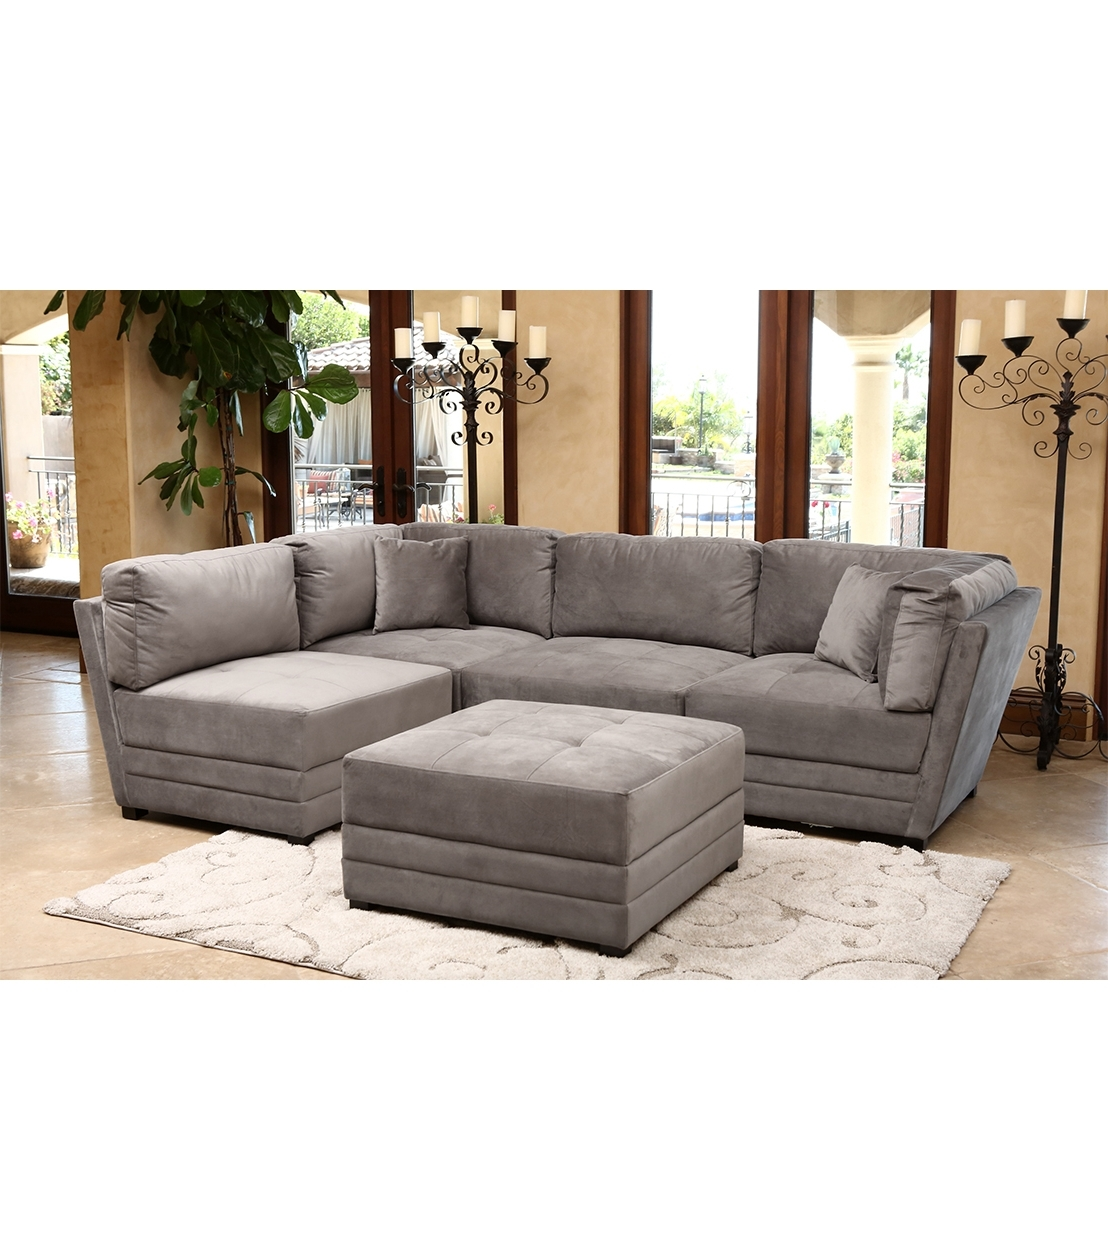 Abbyson Sectional Sofas With Famous Sectionals : Leyla Sectional, Taupe (View 5 of 15)